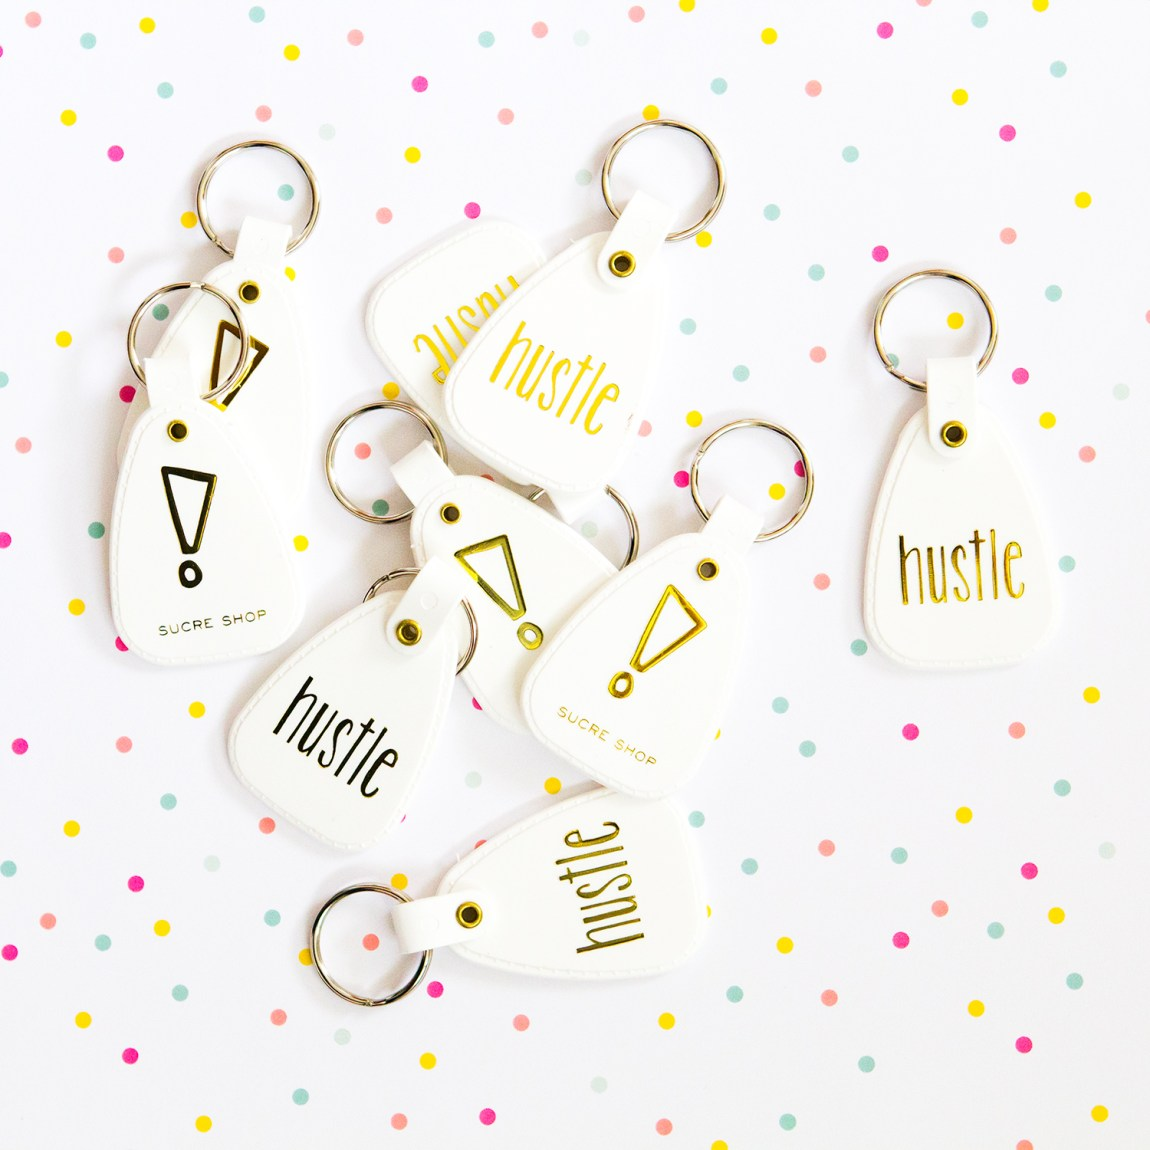 Hustle metallic gold keychains by Sucre